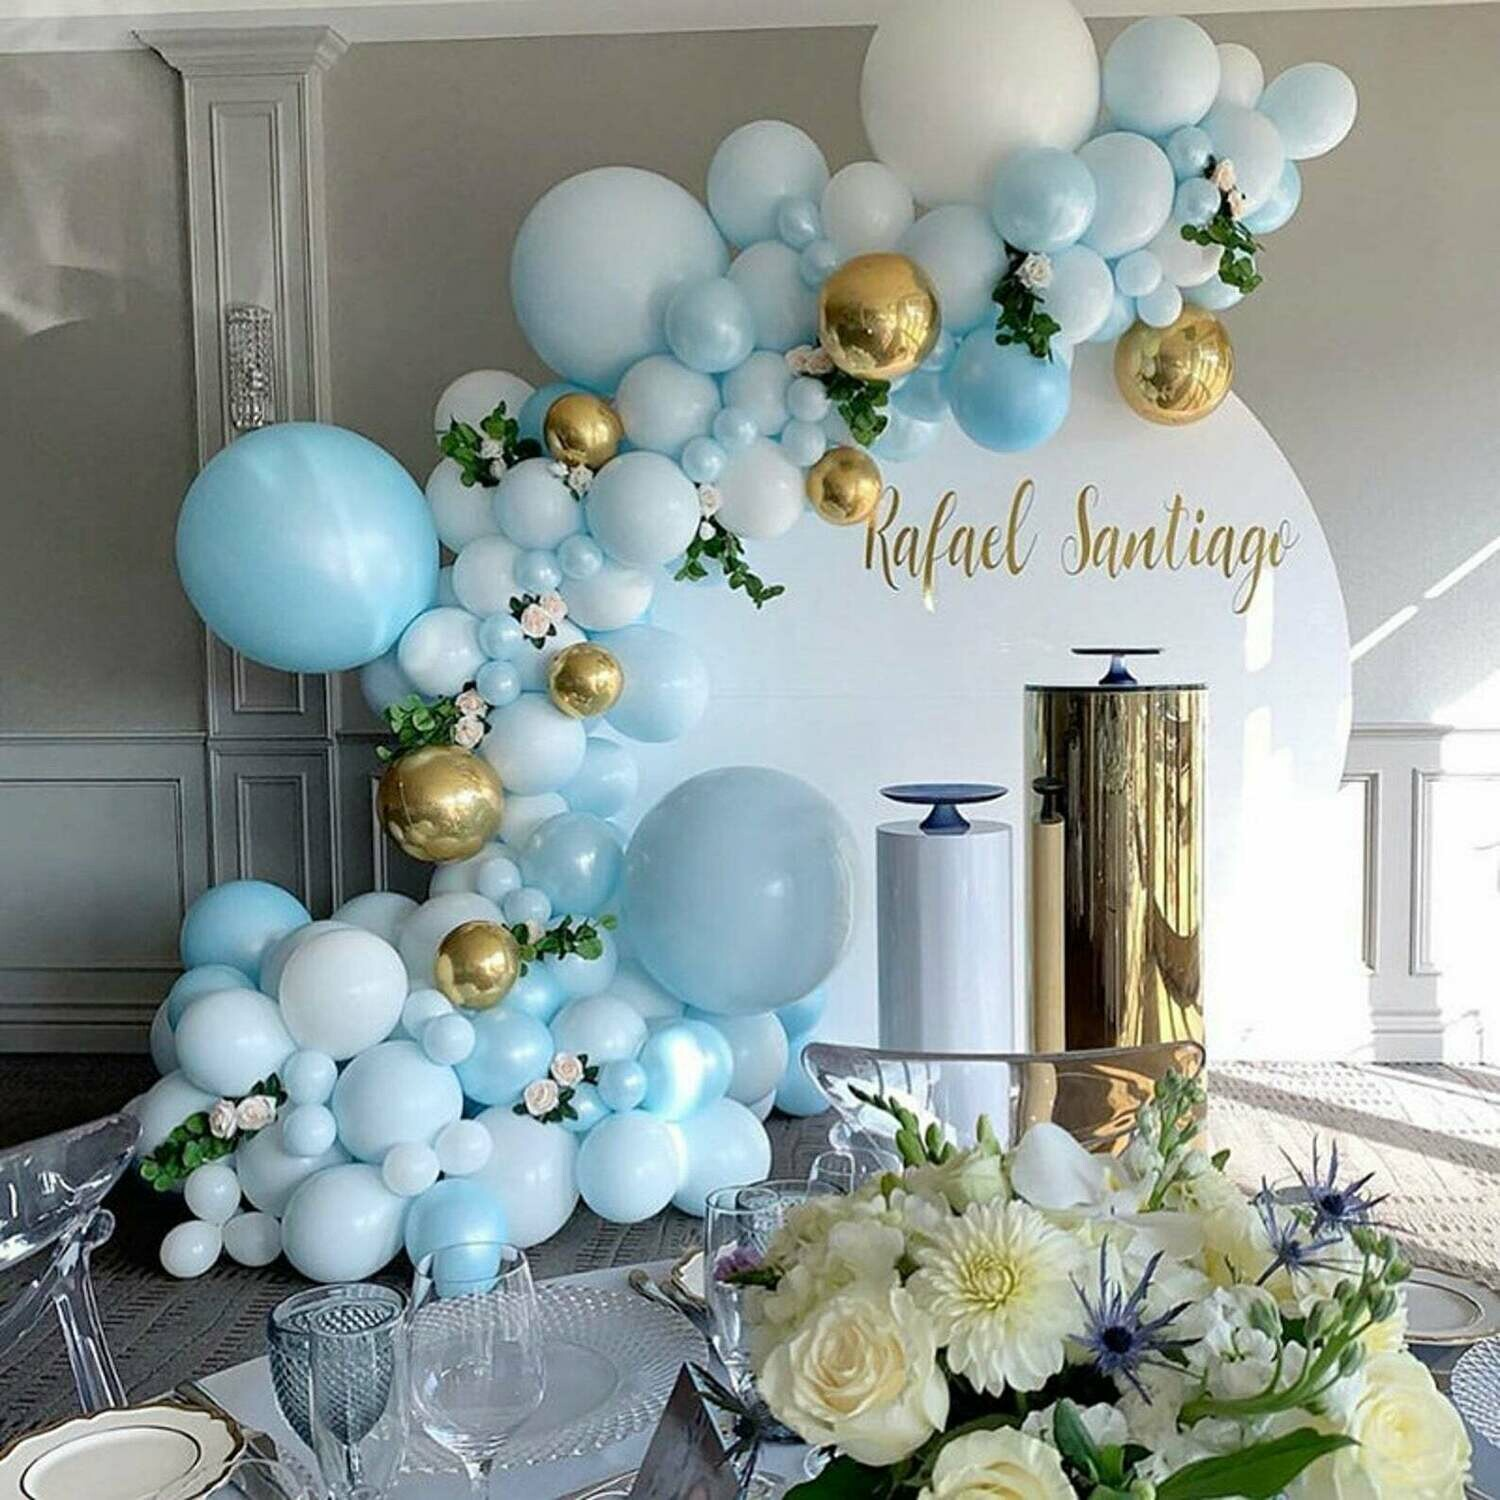 131 pcs DIY Pearly Light Balloons Garland Kit White Maca Blue Balloon Arch 4D Gold Globos For Birthday Wedding Baby Shower Party Decorations